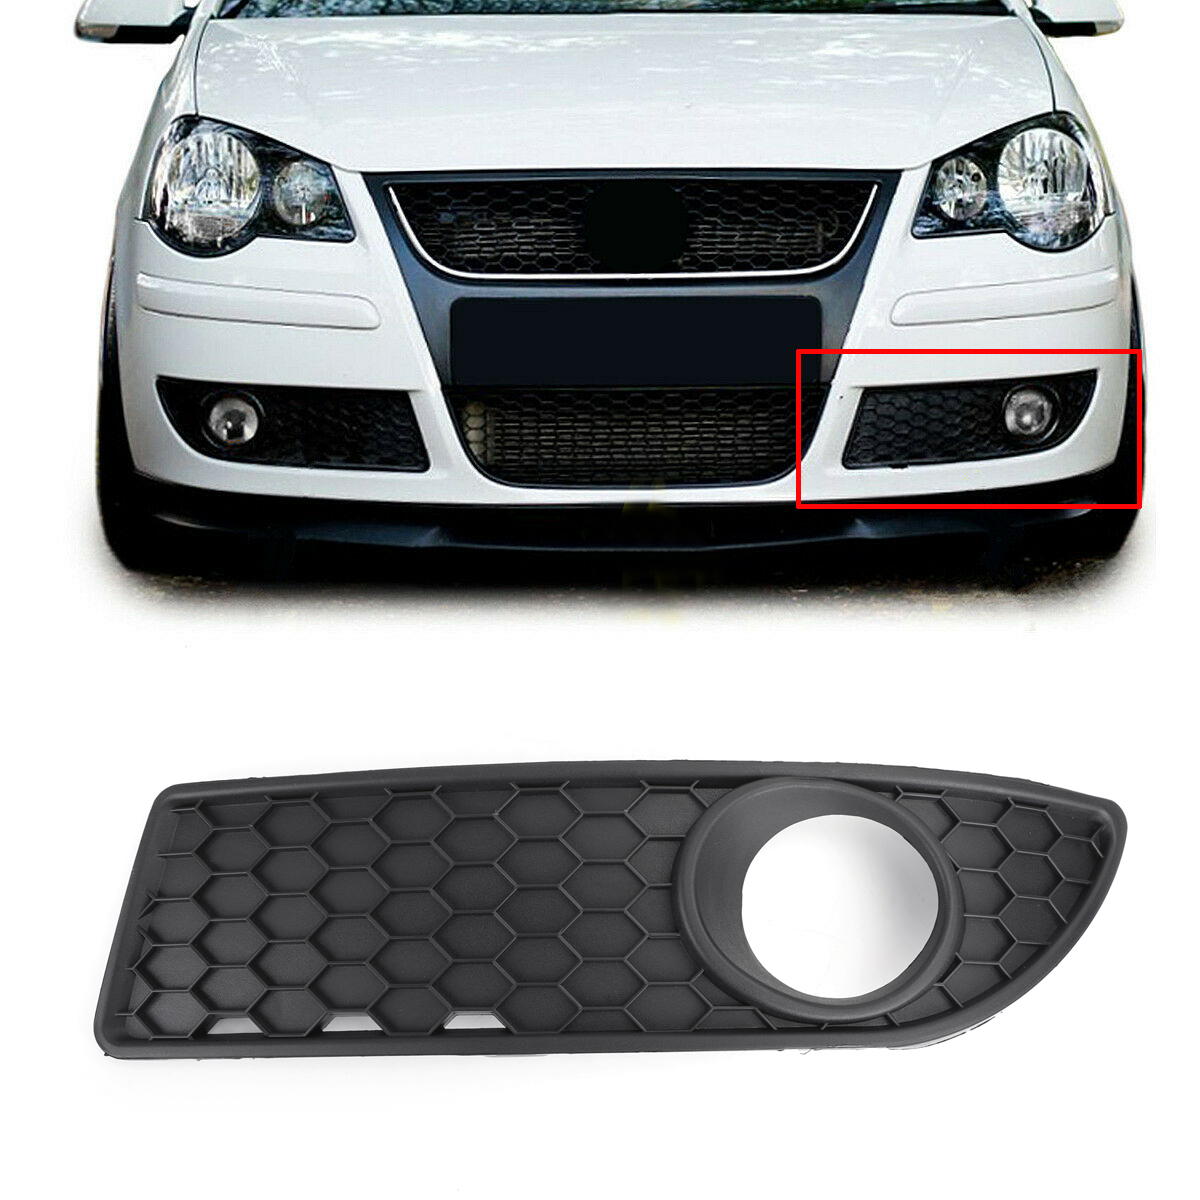 Honeycomb Style Front Lower Grille Left Side For Vw Polo 9n3 Gti 2005 2009 Ebay